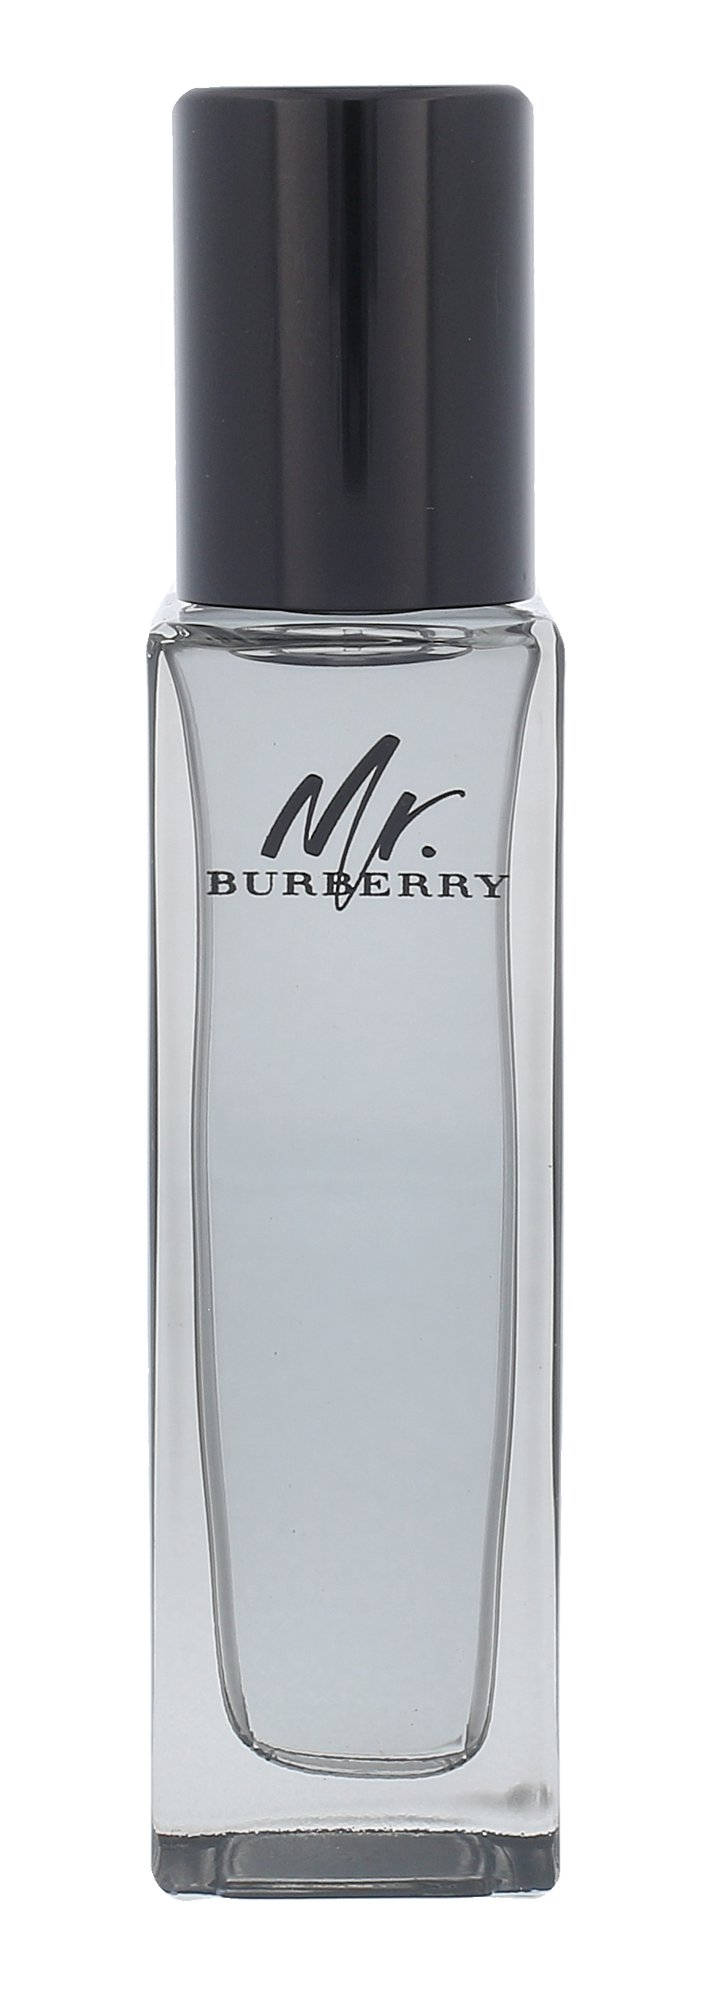 Burberry Mr. Burberry, Toaletná voda 30ml